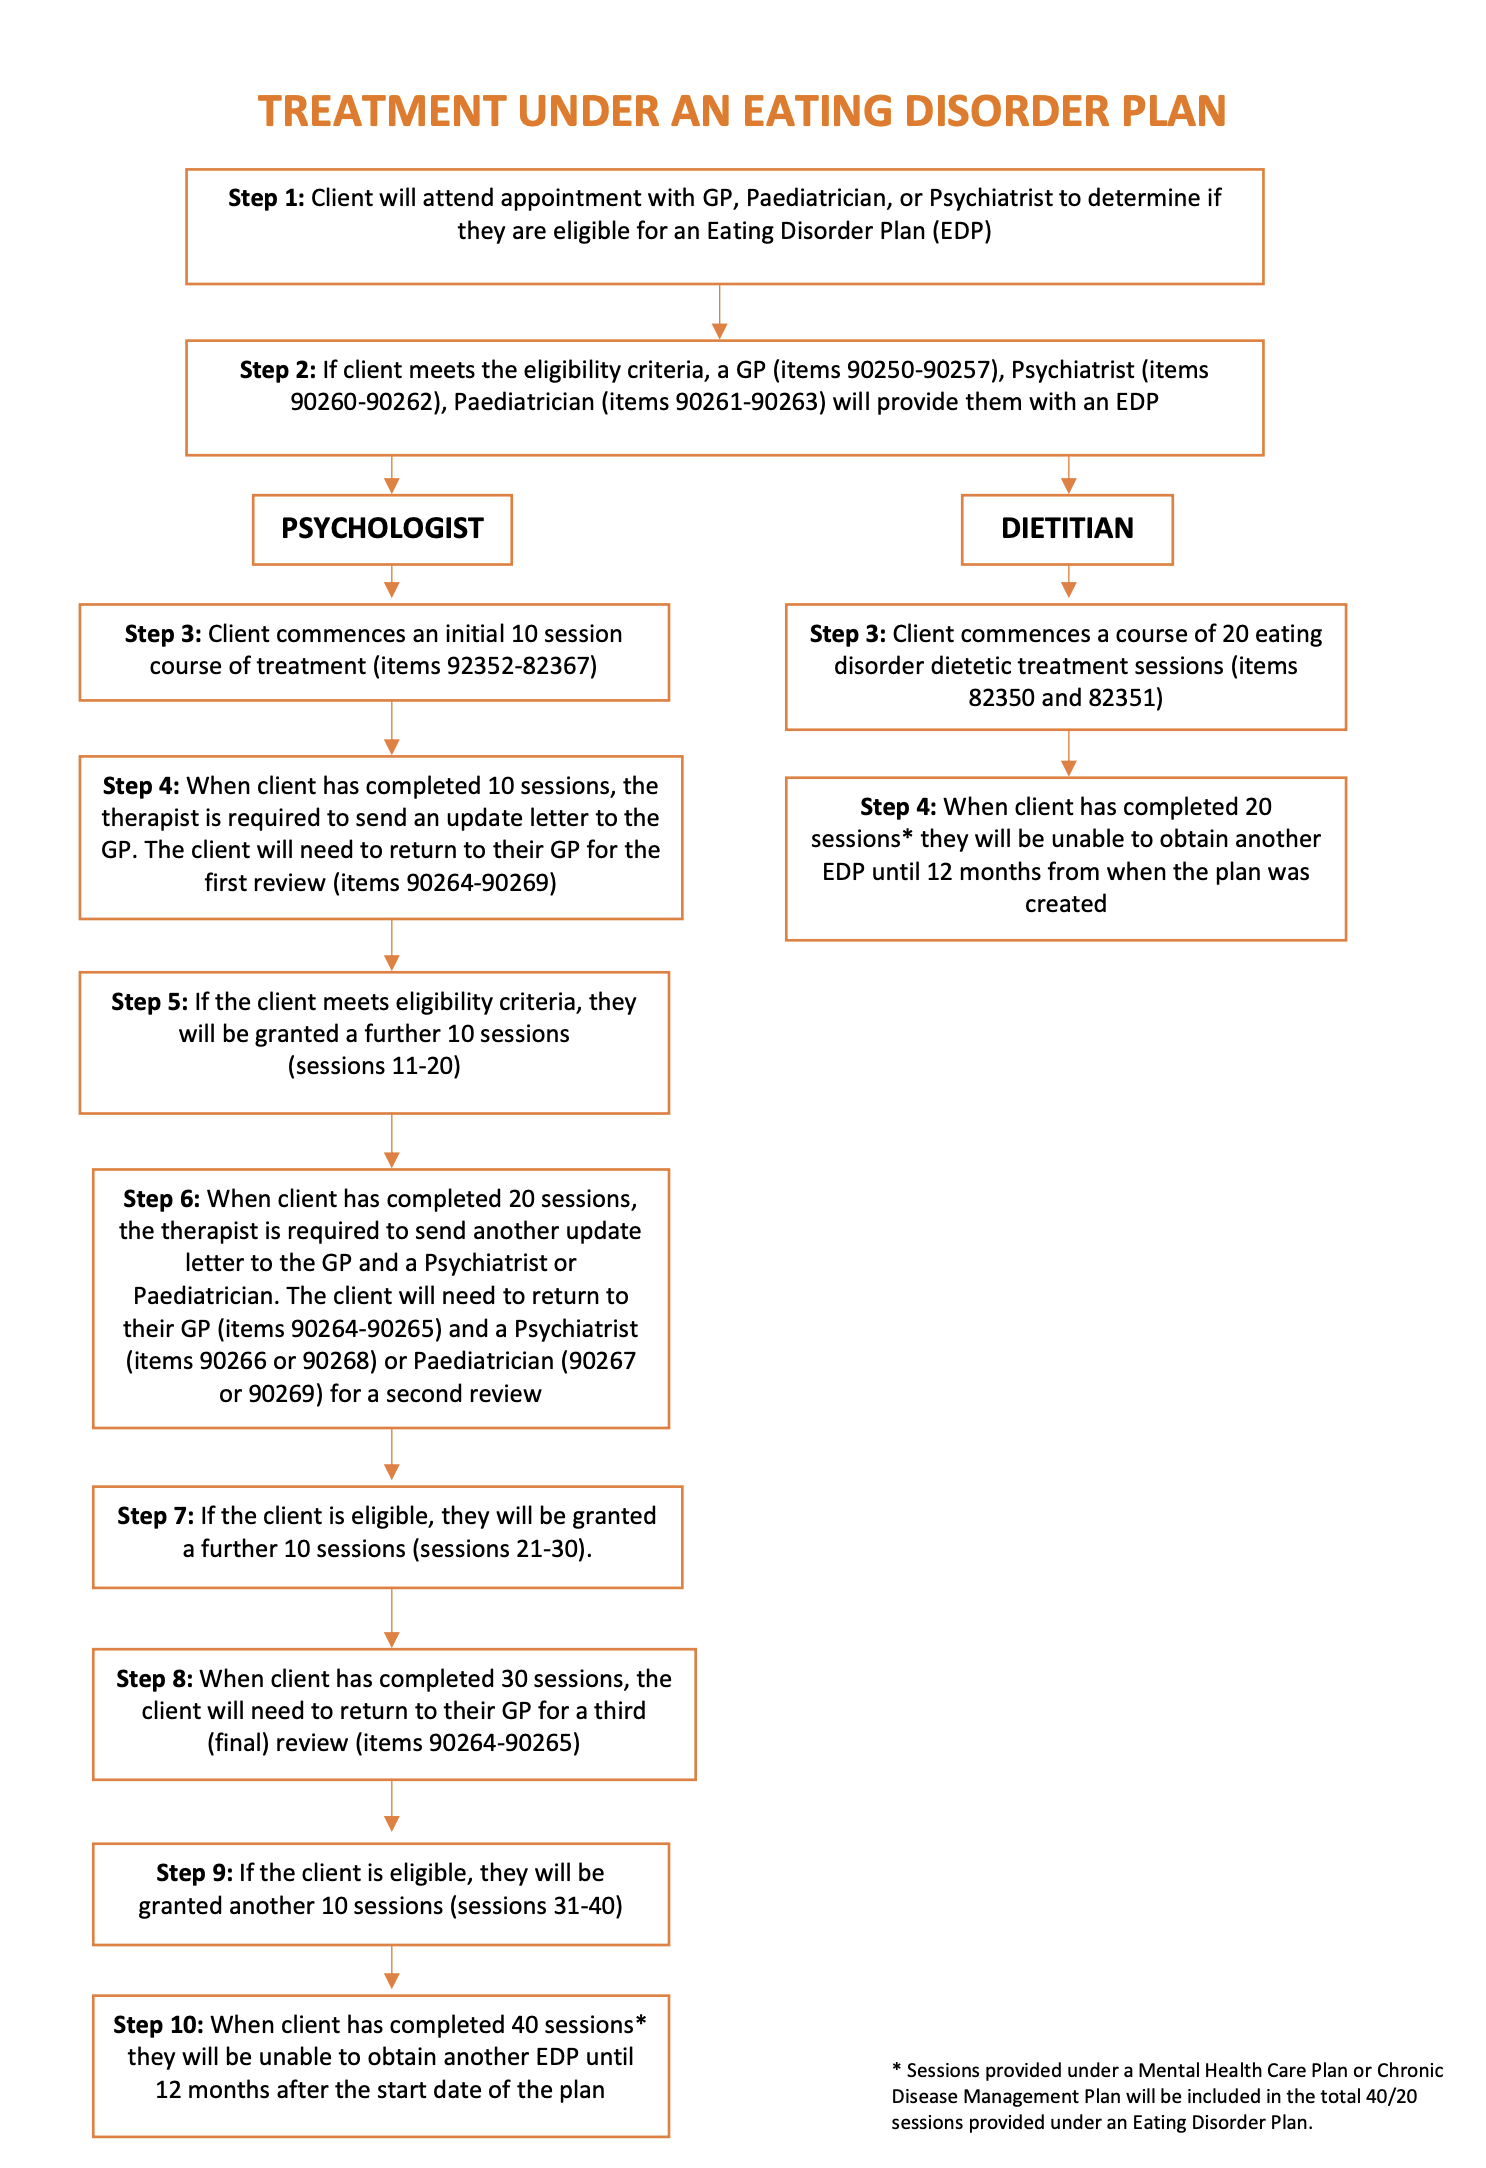 Flow Chart to access Eating Disorder Treatment Plan items